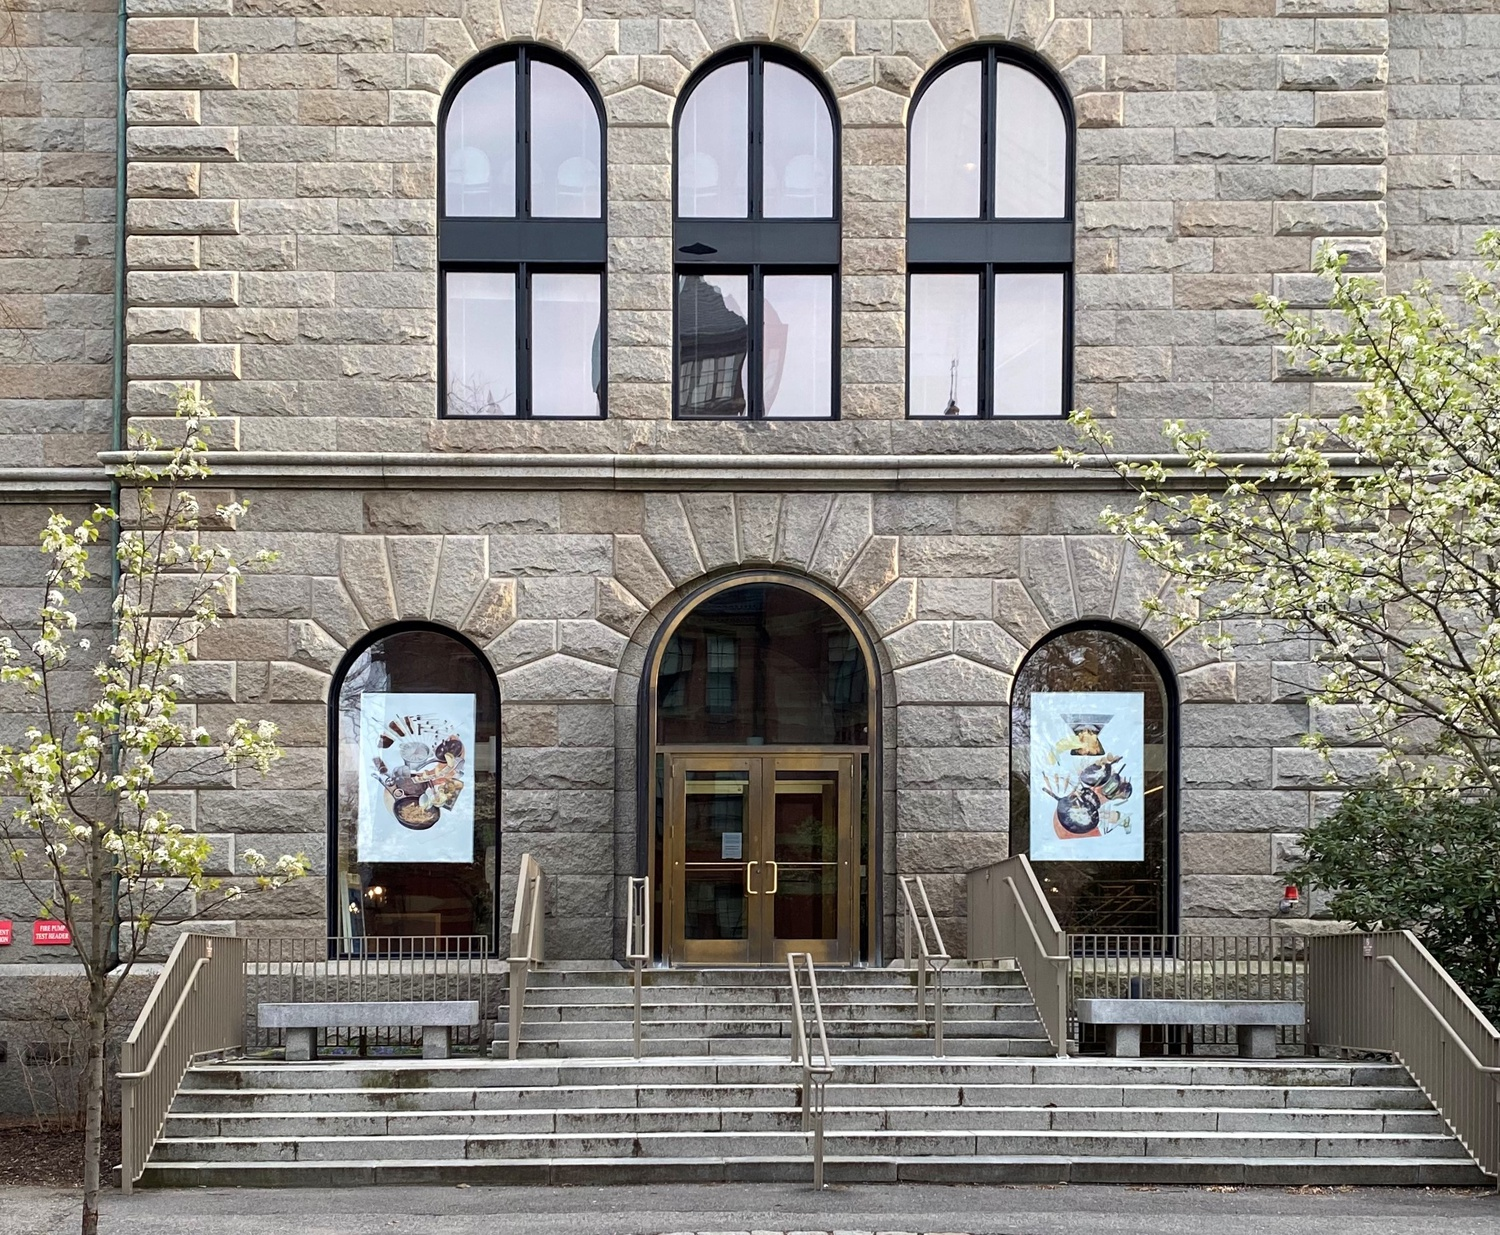 The department of Romance Languages and Literatures is located in Boylston Hall.